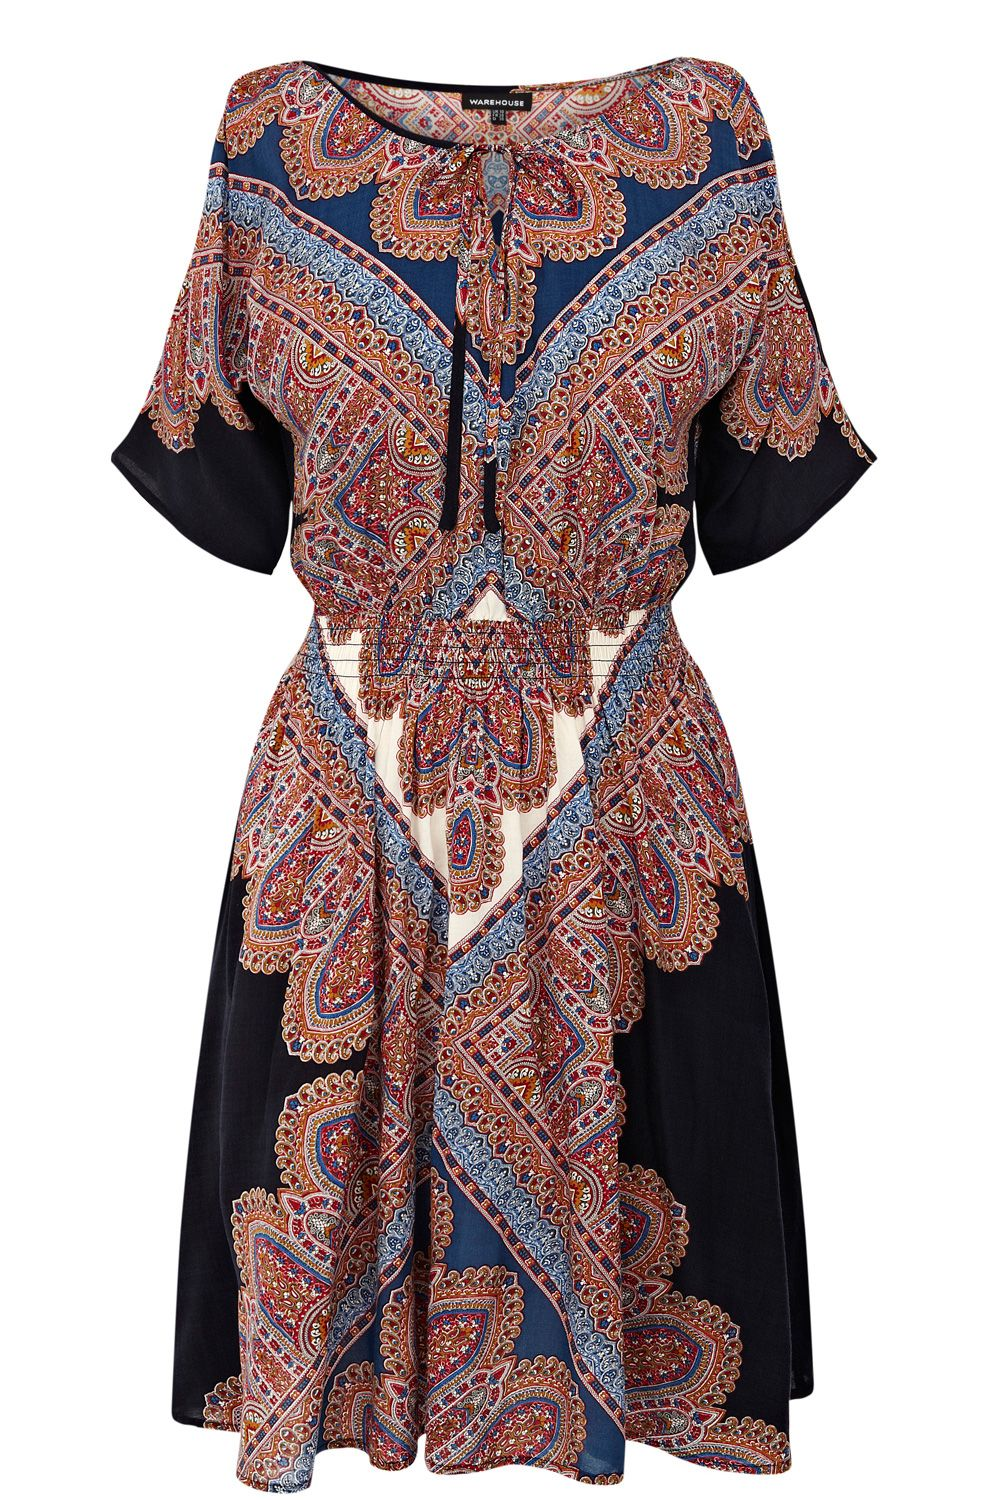 Arizona split sleeve dress